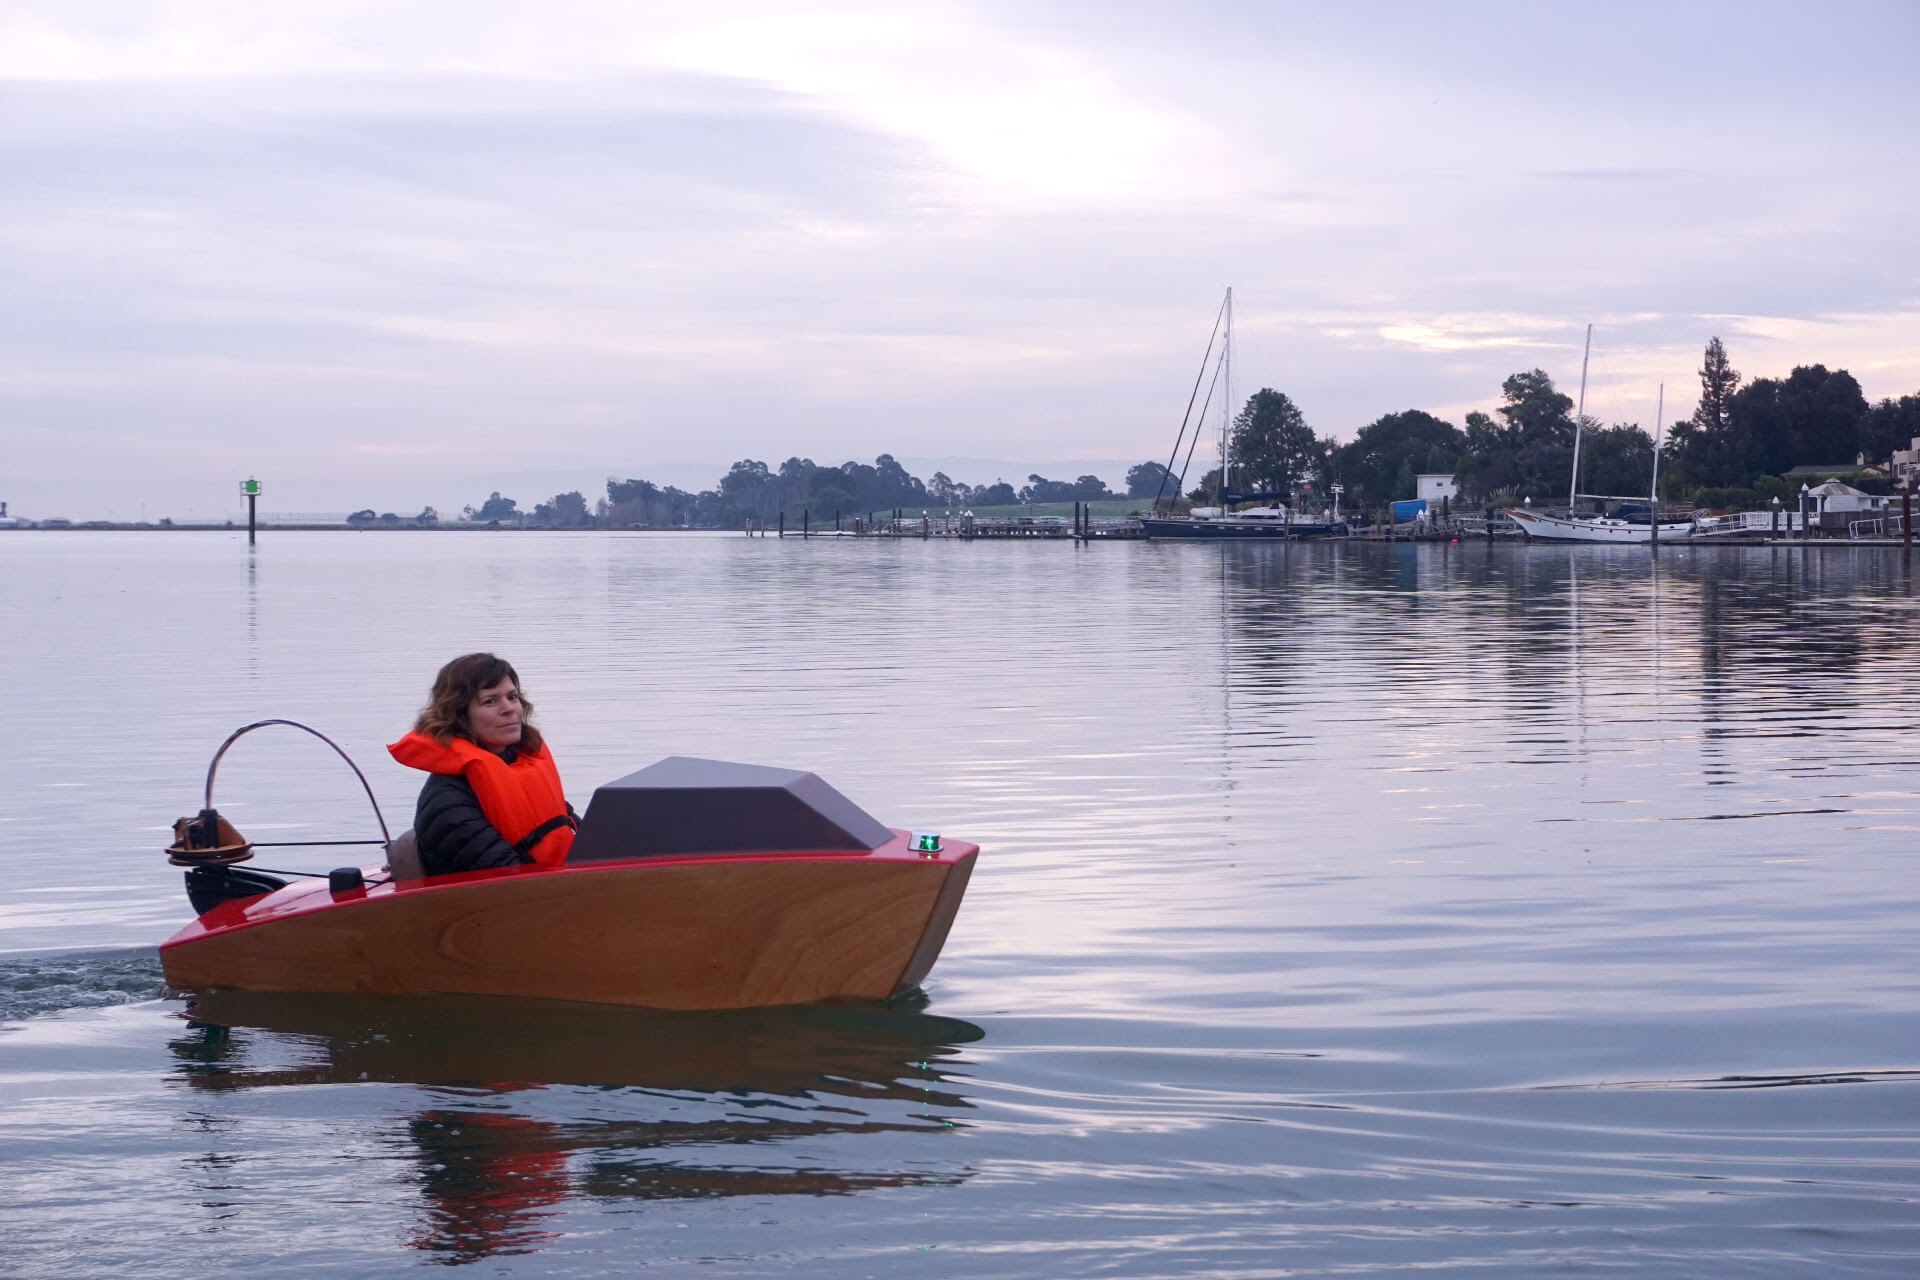 Erika at the first launch of the mini electric boat, turning around